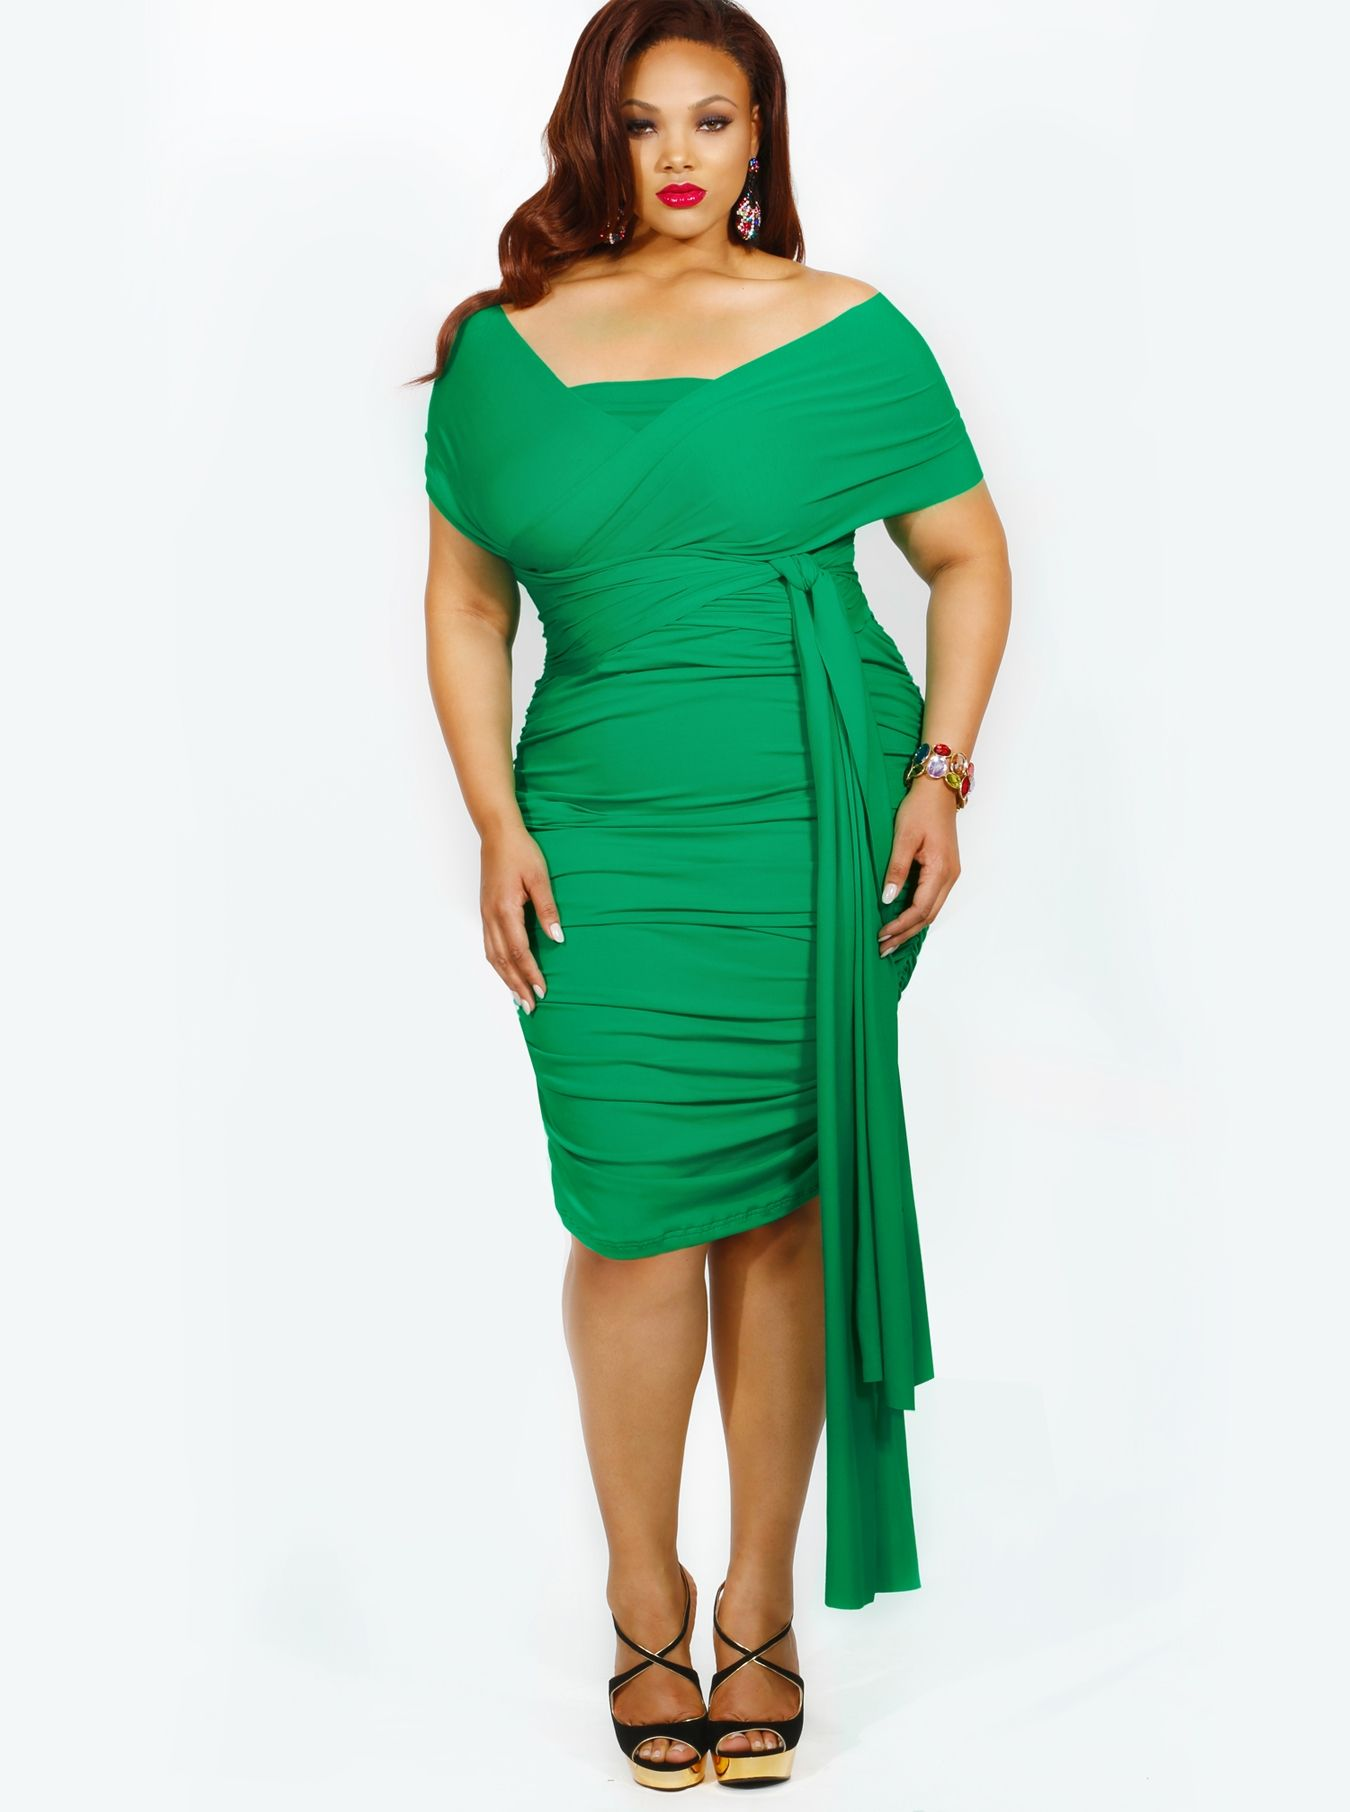 Kelly green   Daytime Summer Outfit Crushes   Plus size ...